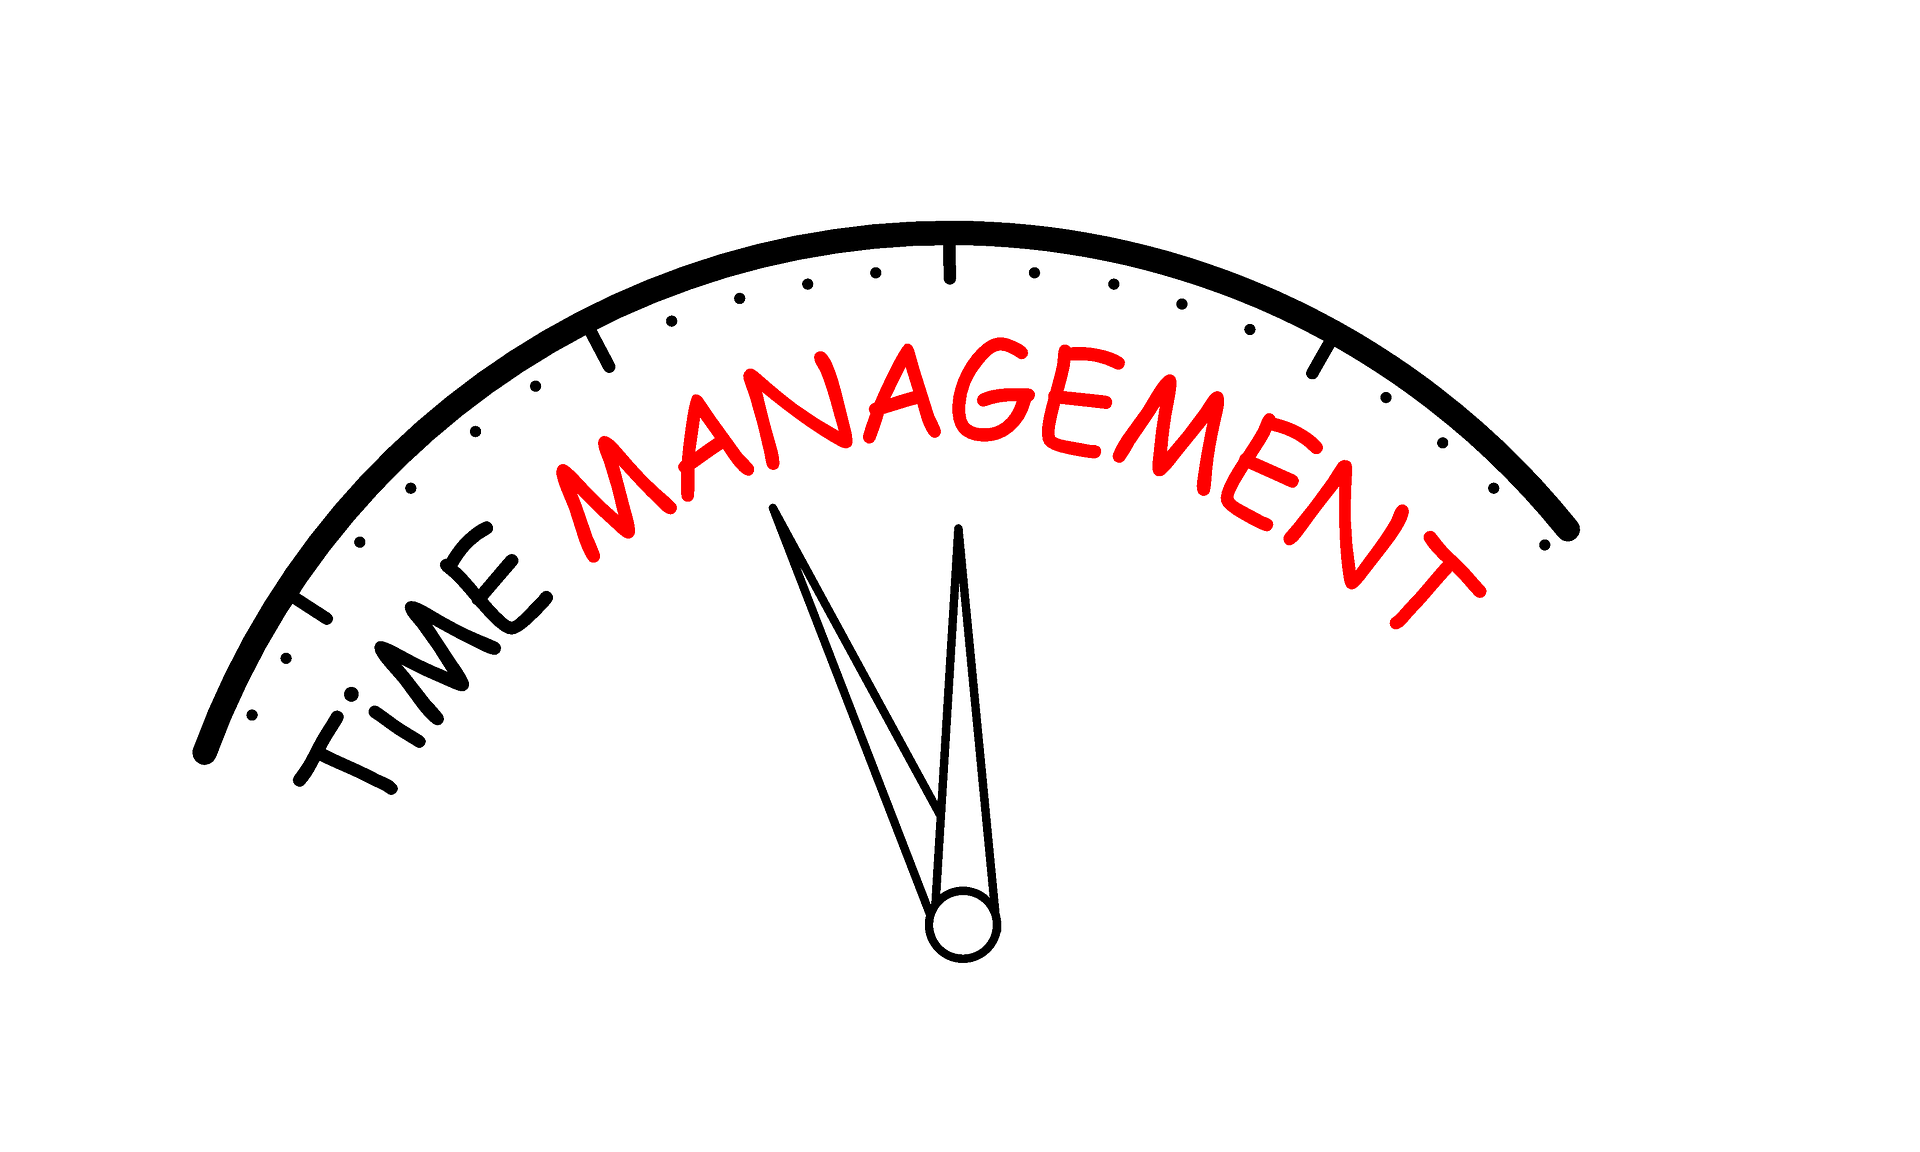 10 EFFECTIVE TIME MANAGEMENT TIPS FOR THE SMALL BUSINESS